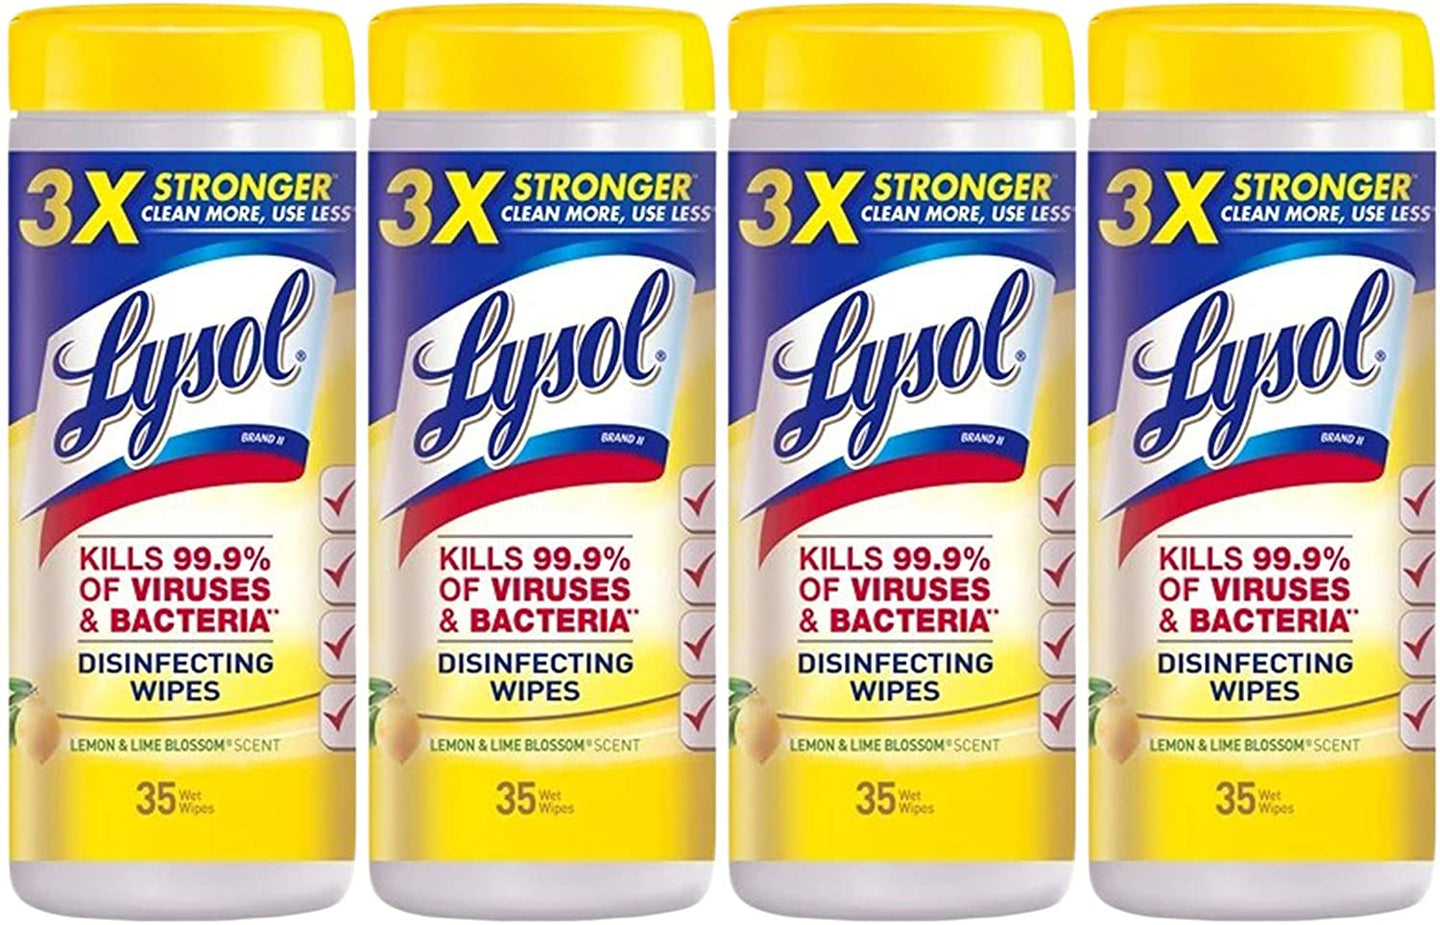 Lysol Disinfecting Wipes, Lemon & Lime Blossom, 35 Count, Pack of 4